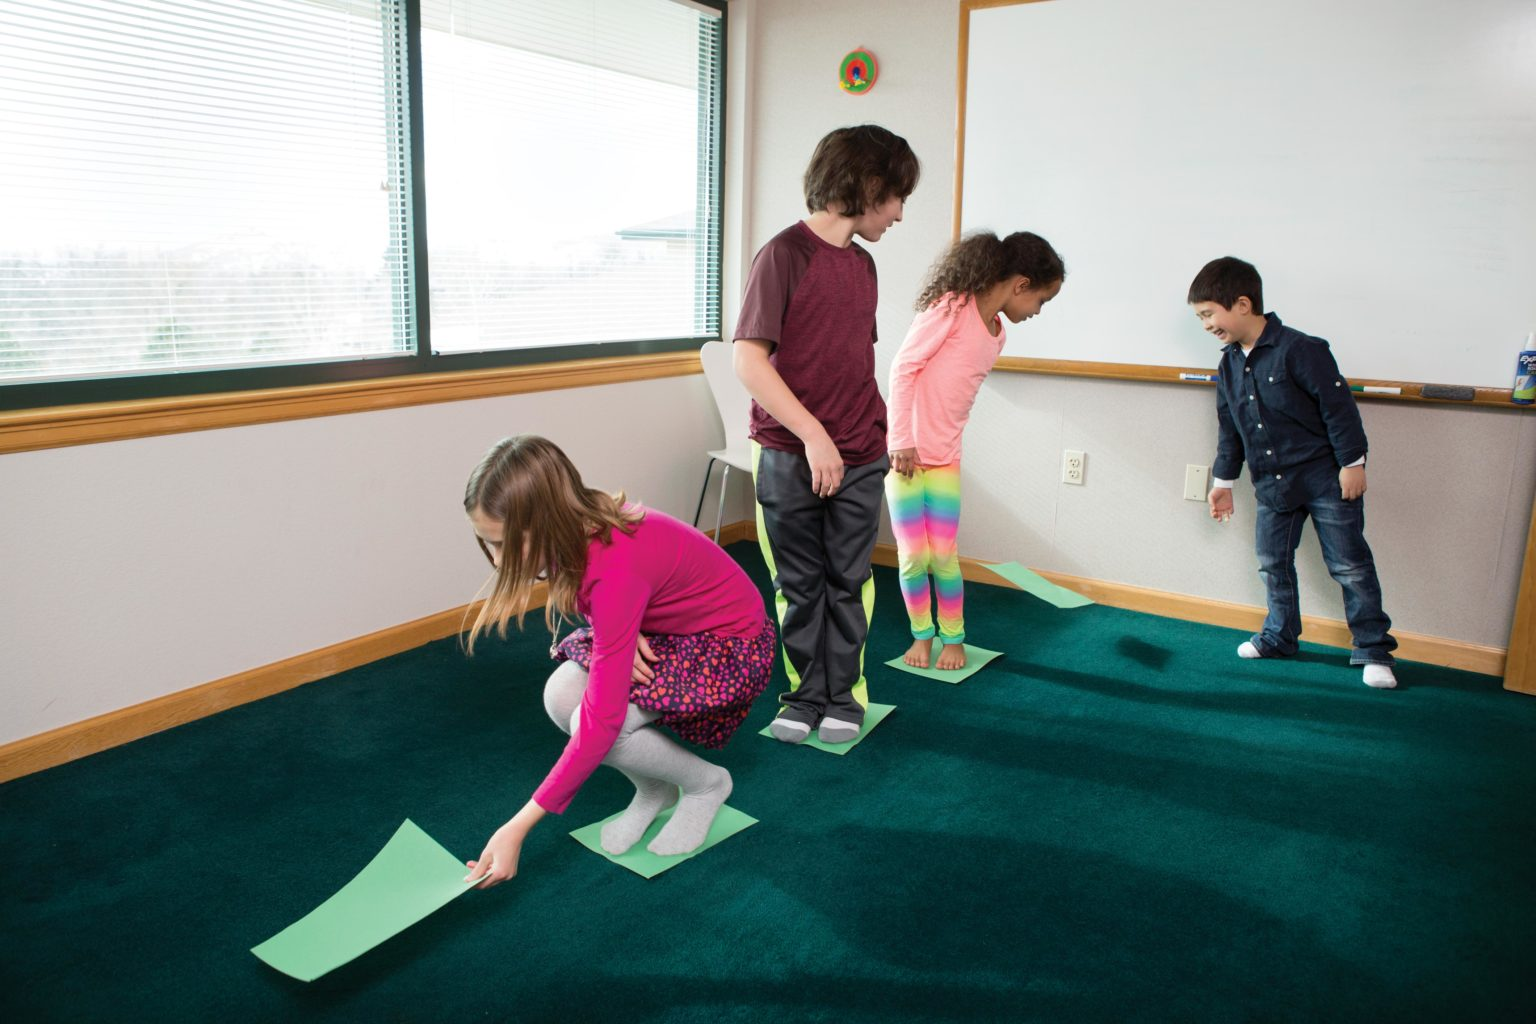 Children in a line, placing green paper on the ground as stepping stones.